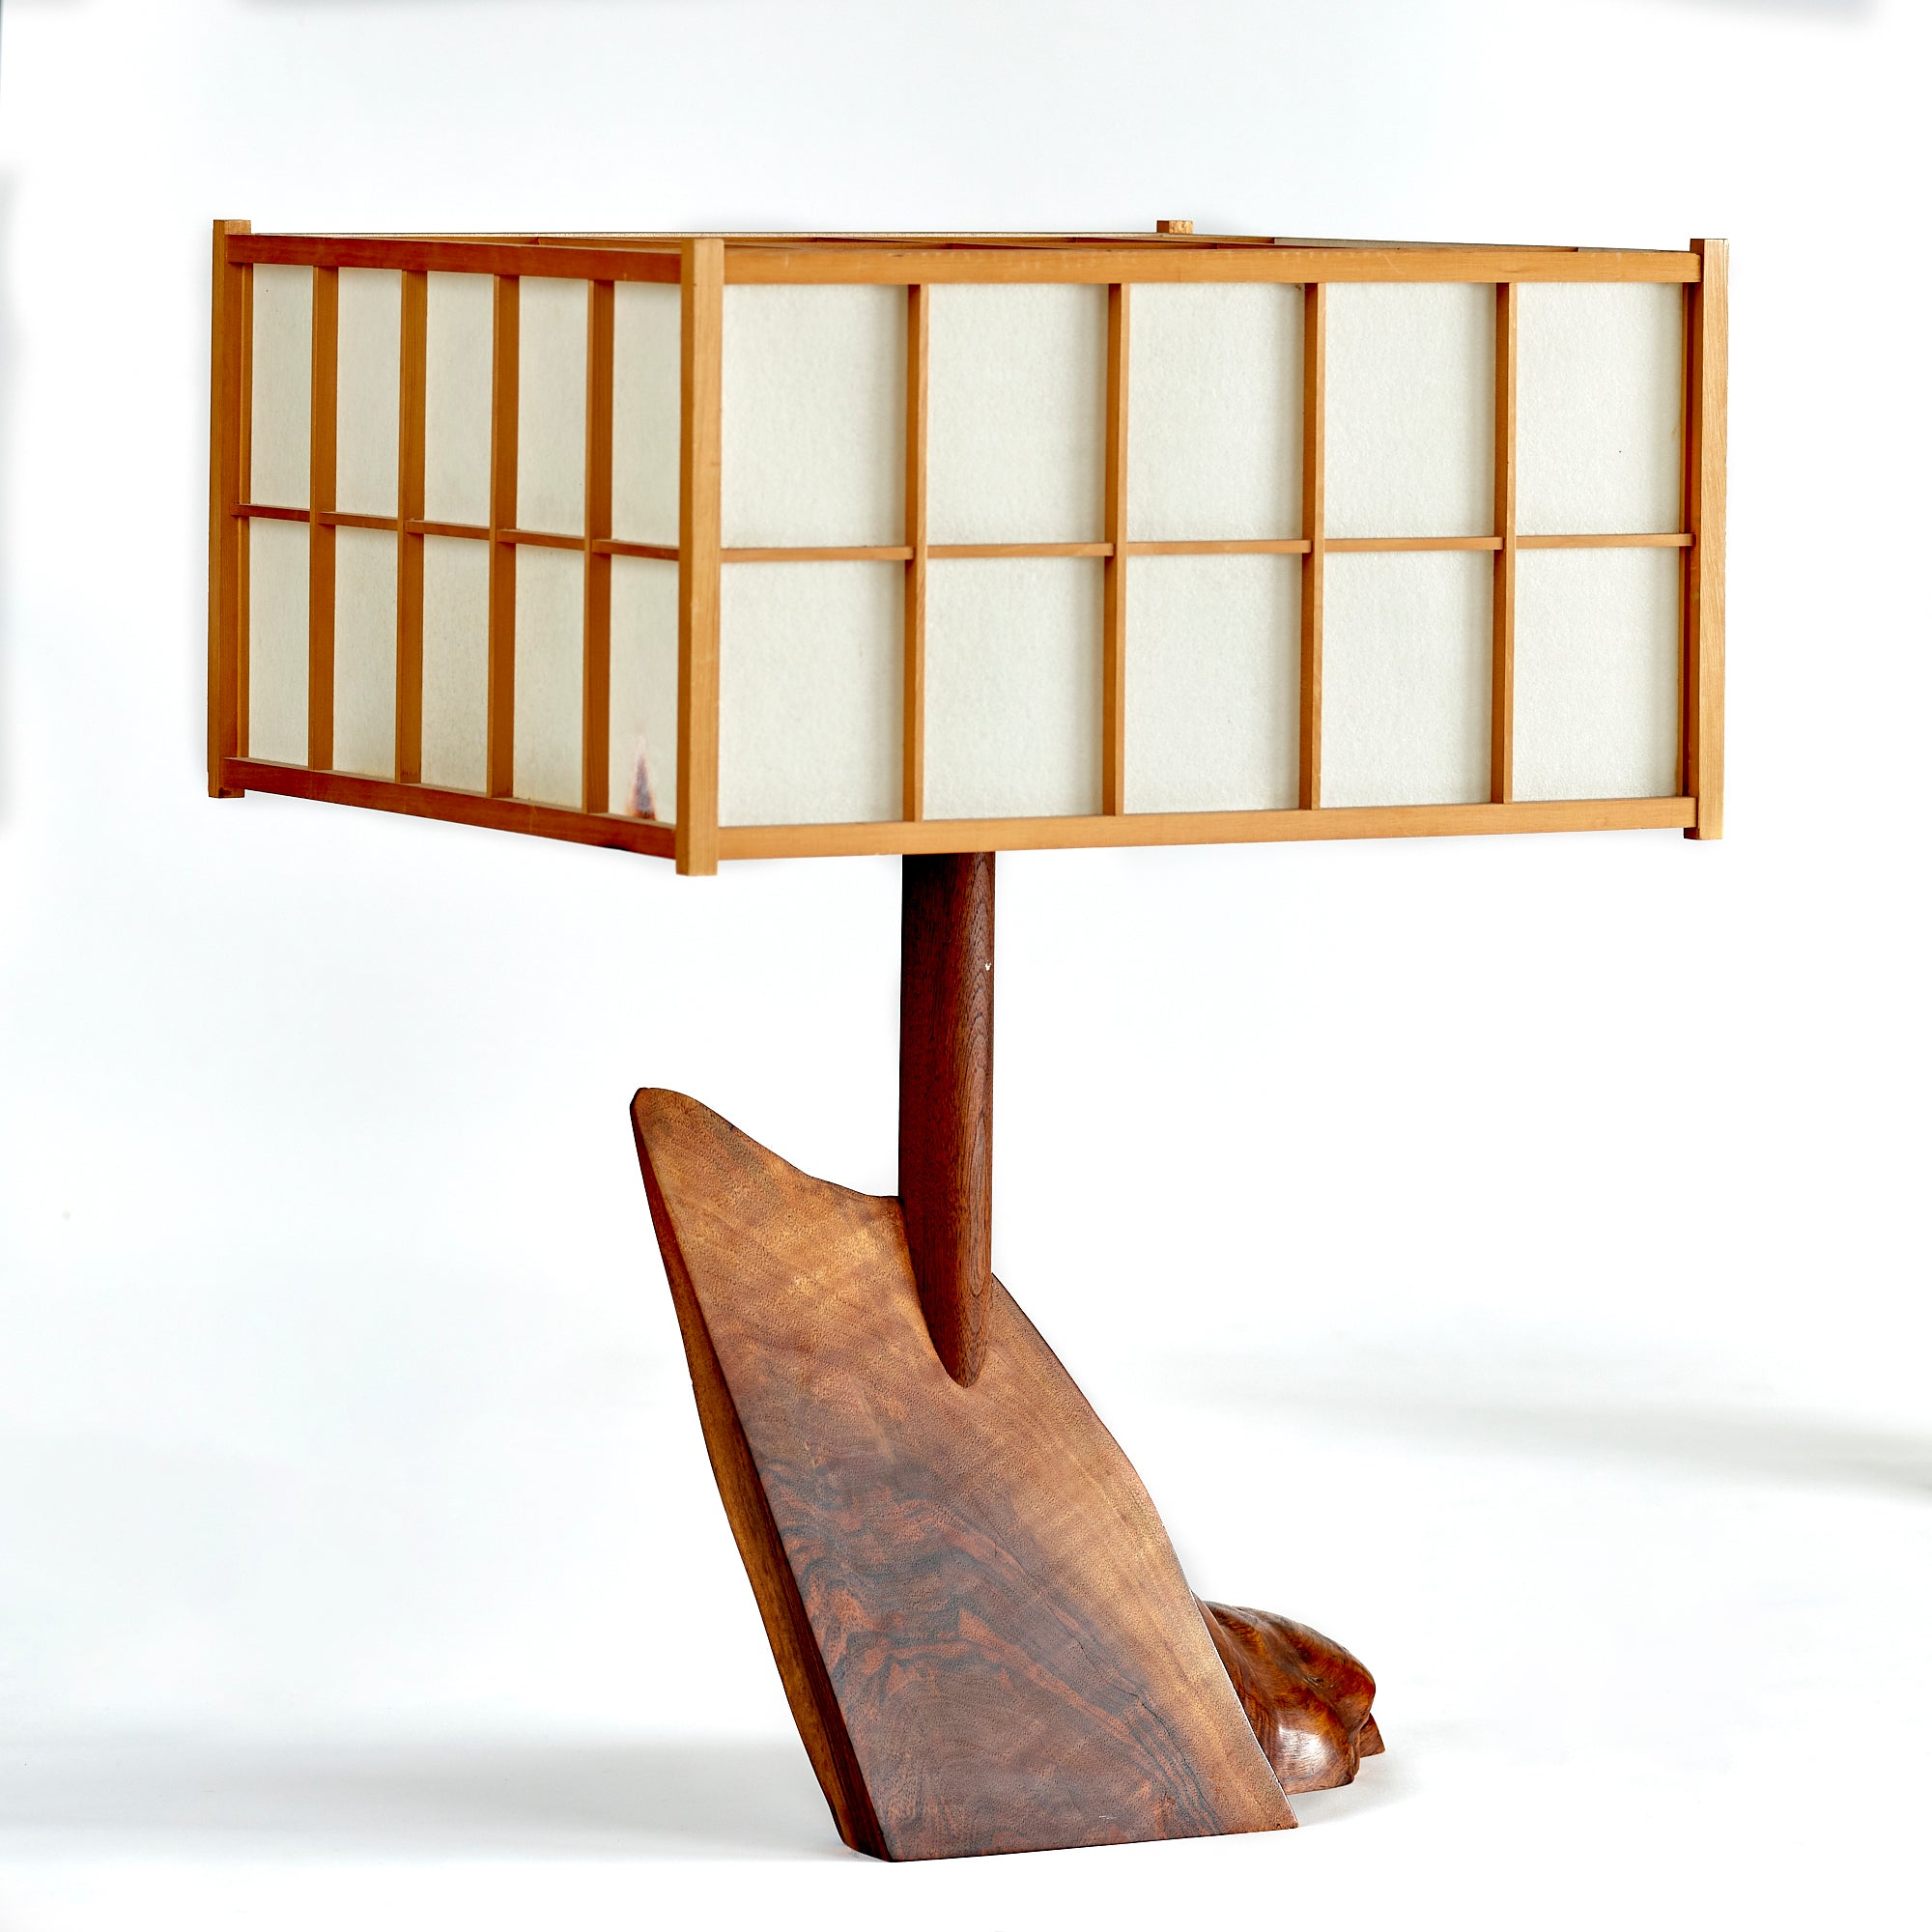 George Nakashima Table Lamp, 1974 - The Exchange Int